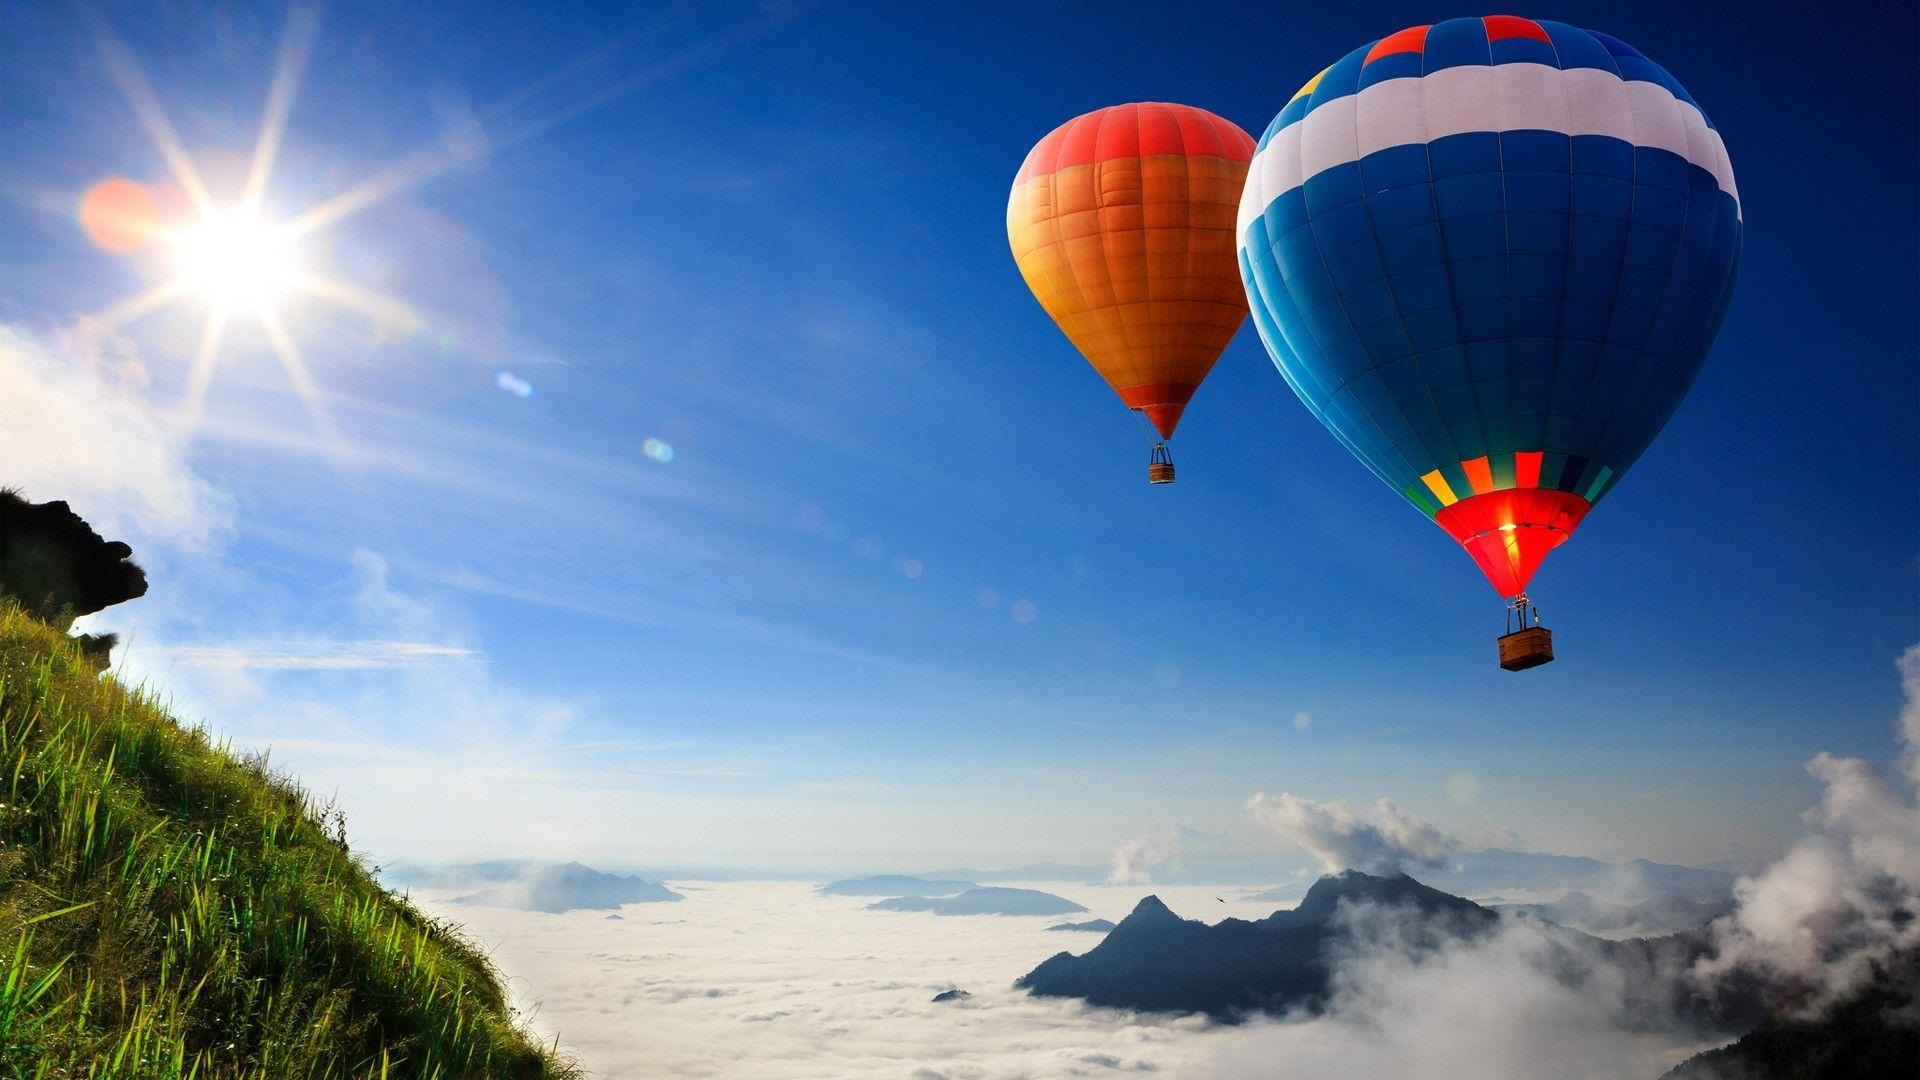 Hot Air Balloons Wallpapers Wallpaper Cave